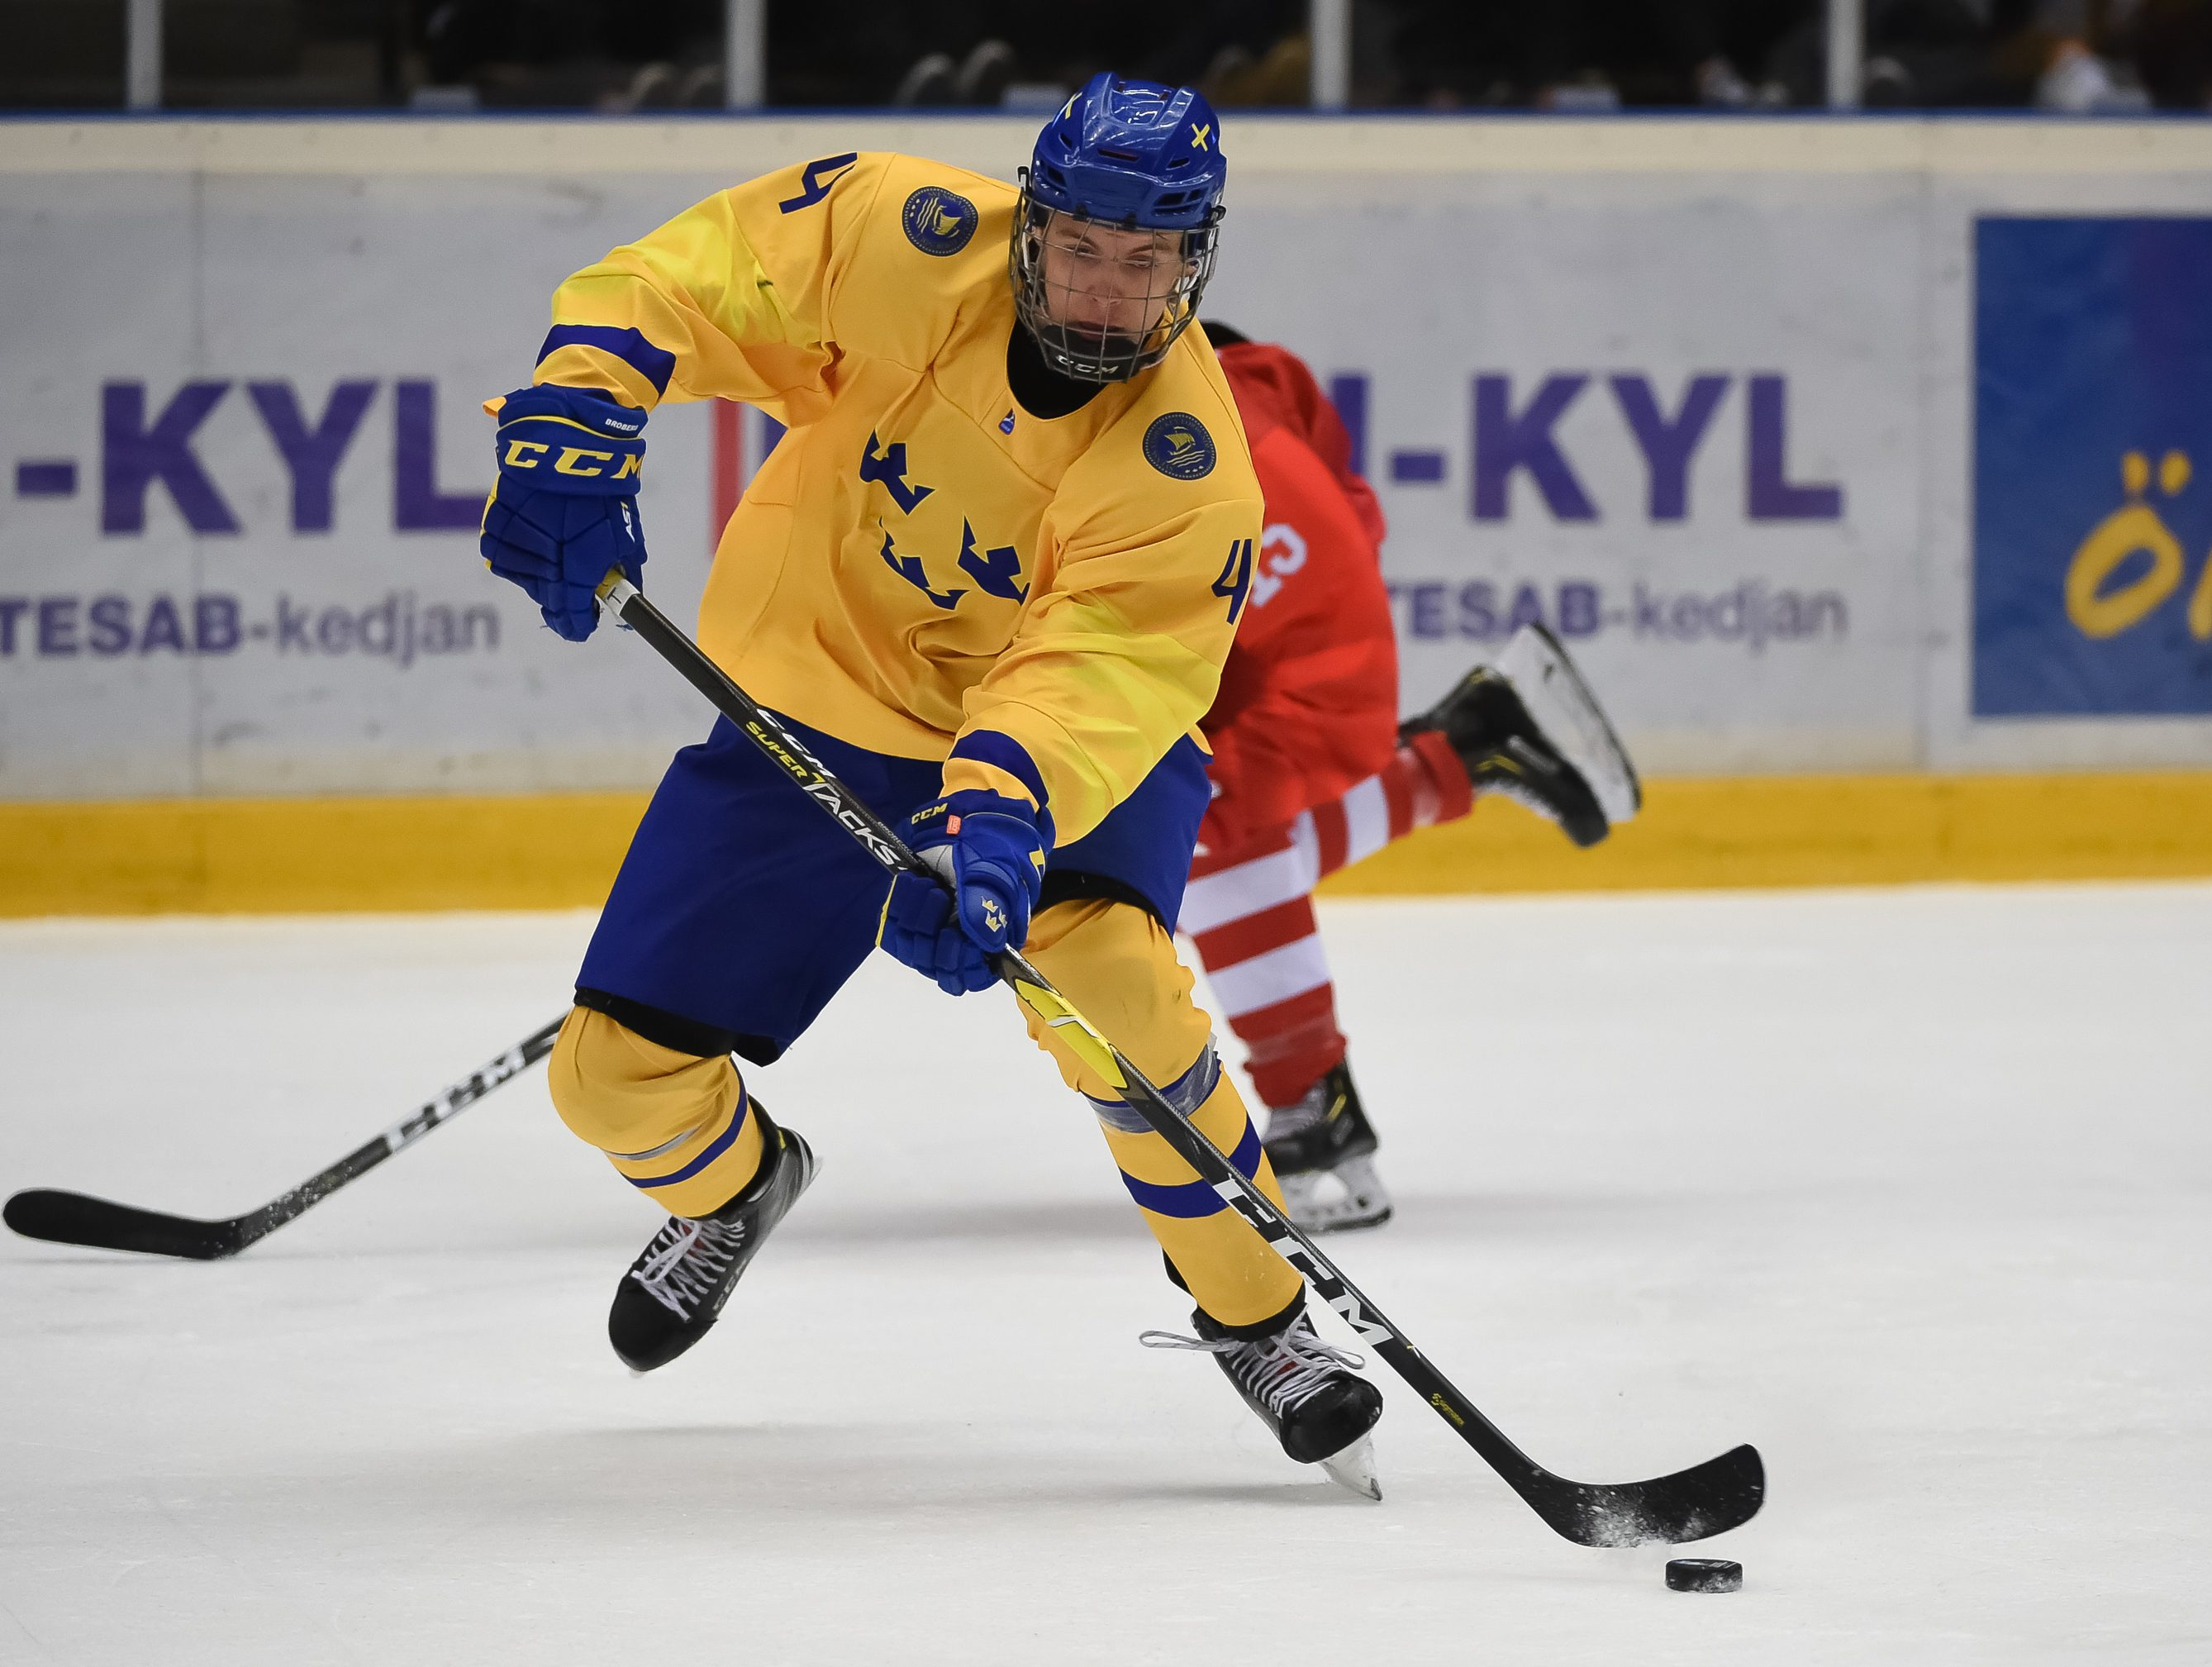 ORNSKOLDSVIK, SWEDEN - APRIL 23: Swedens Philip Broberg #4 makes a pass during preliminary round action against Russia at the 2019 IIHF Ice Hockey U18 World Championship at Fjallraven Center on April 23, 2019 in Ornskoldsvik, Sweden. (Photo by Steve Kingsman/HHOF-IIHF Images)